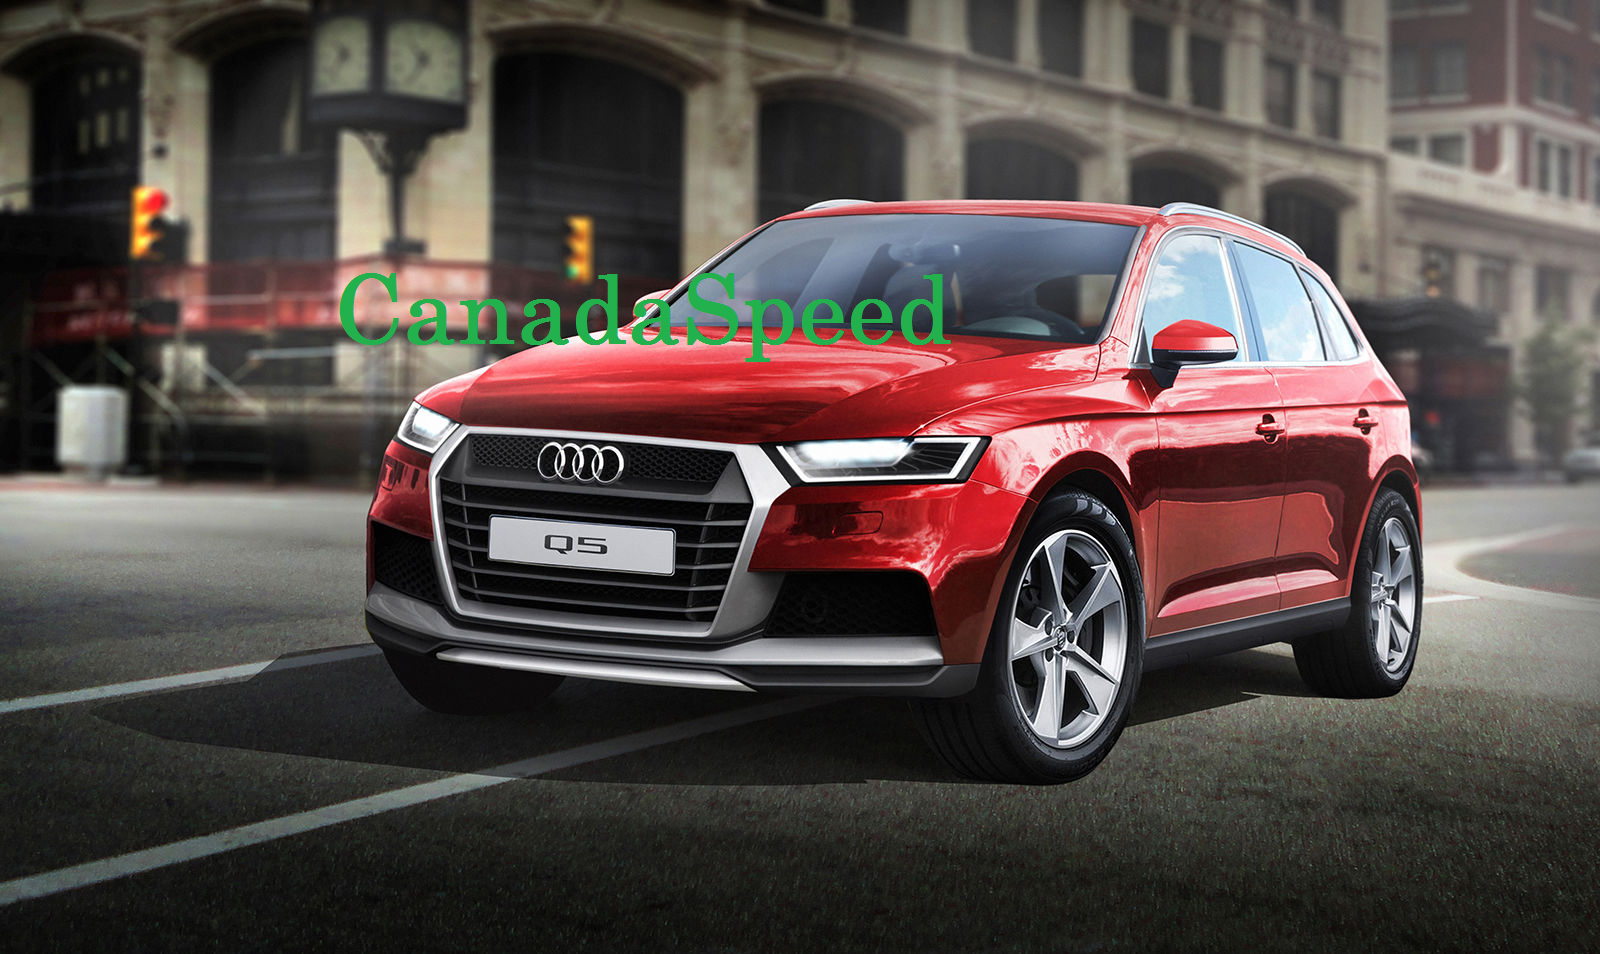 Audi Q5 2016 Canada Release Date Price Review And Specs The Is A Minimized Extravagance Hybrid Offered In Seven Trim Levels That Compare To